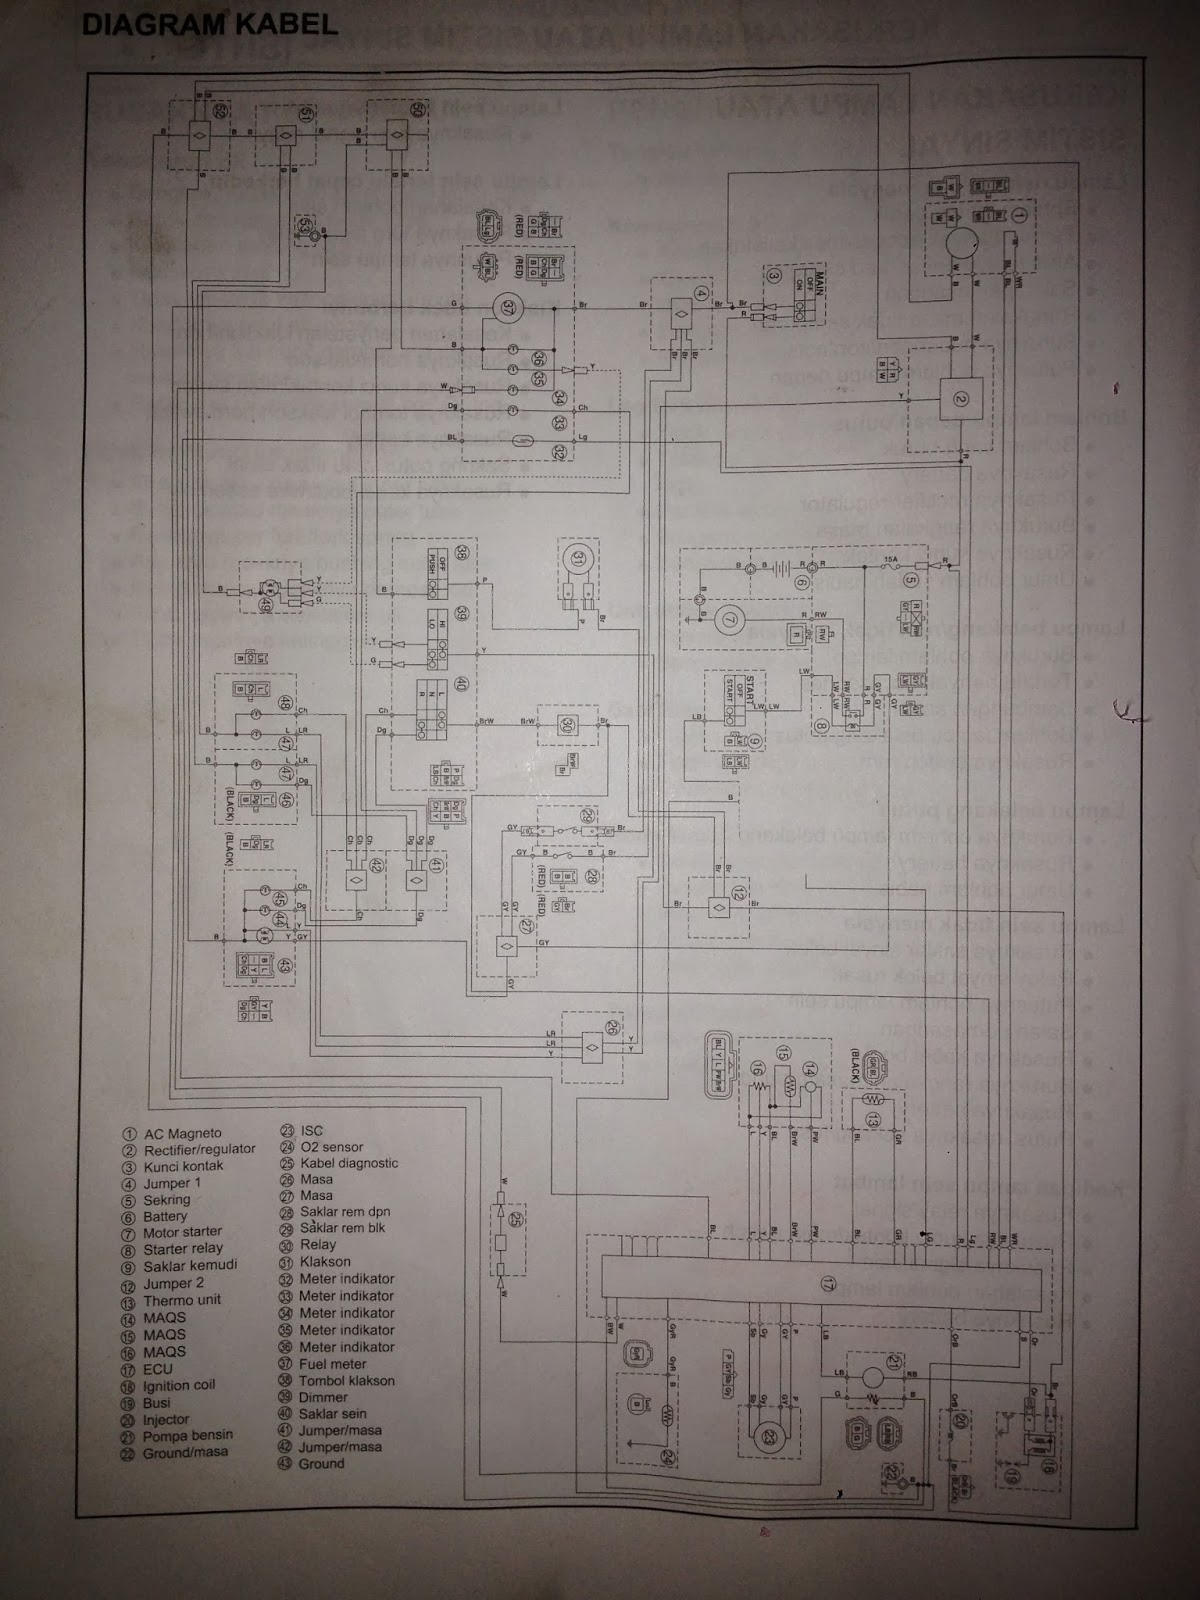 yamaha mio soul wiring diagram for 4 way light switch bengkel motor kelistrikan gt atau j